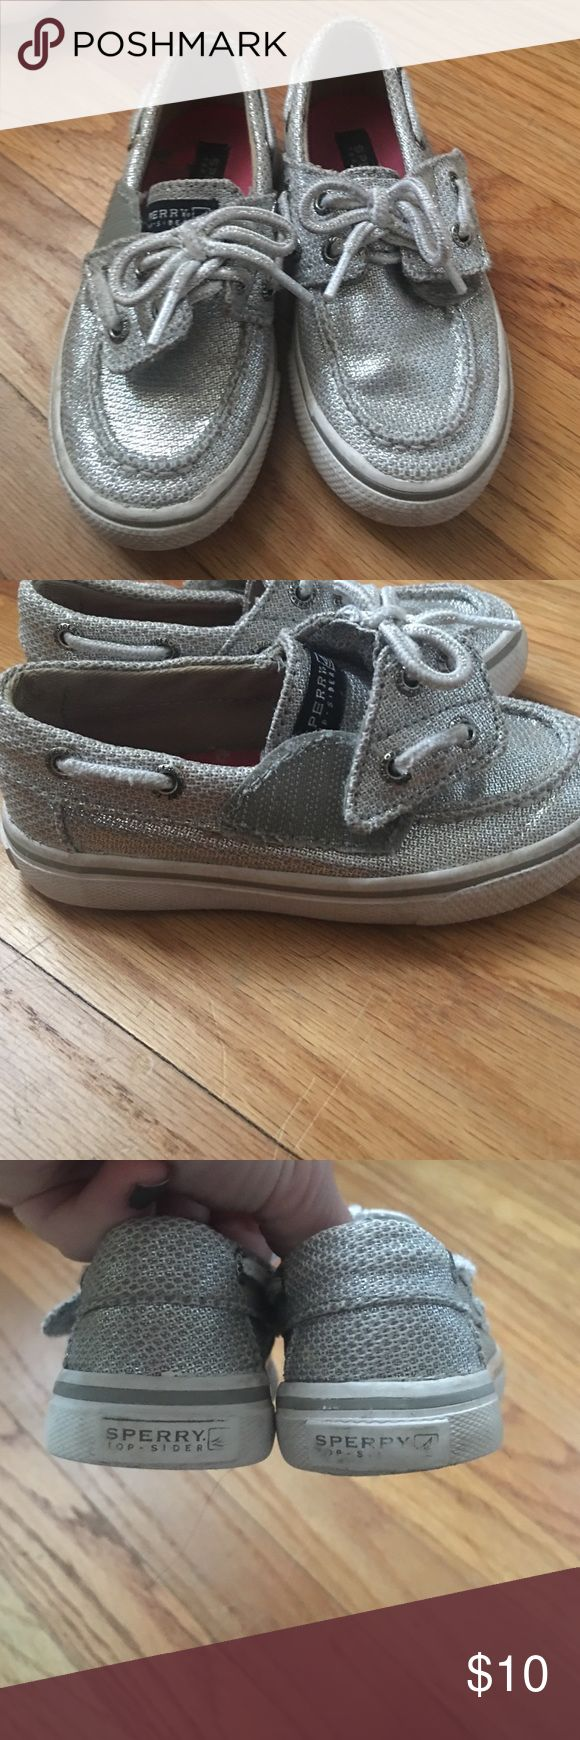 Girls Sperry Silver little girl's Sperry shoes Sperry Top-Sider Shoes Sneakers